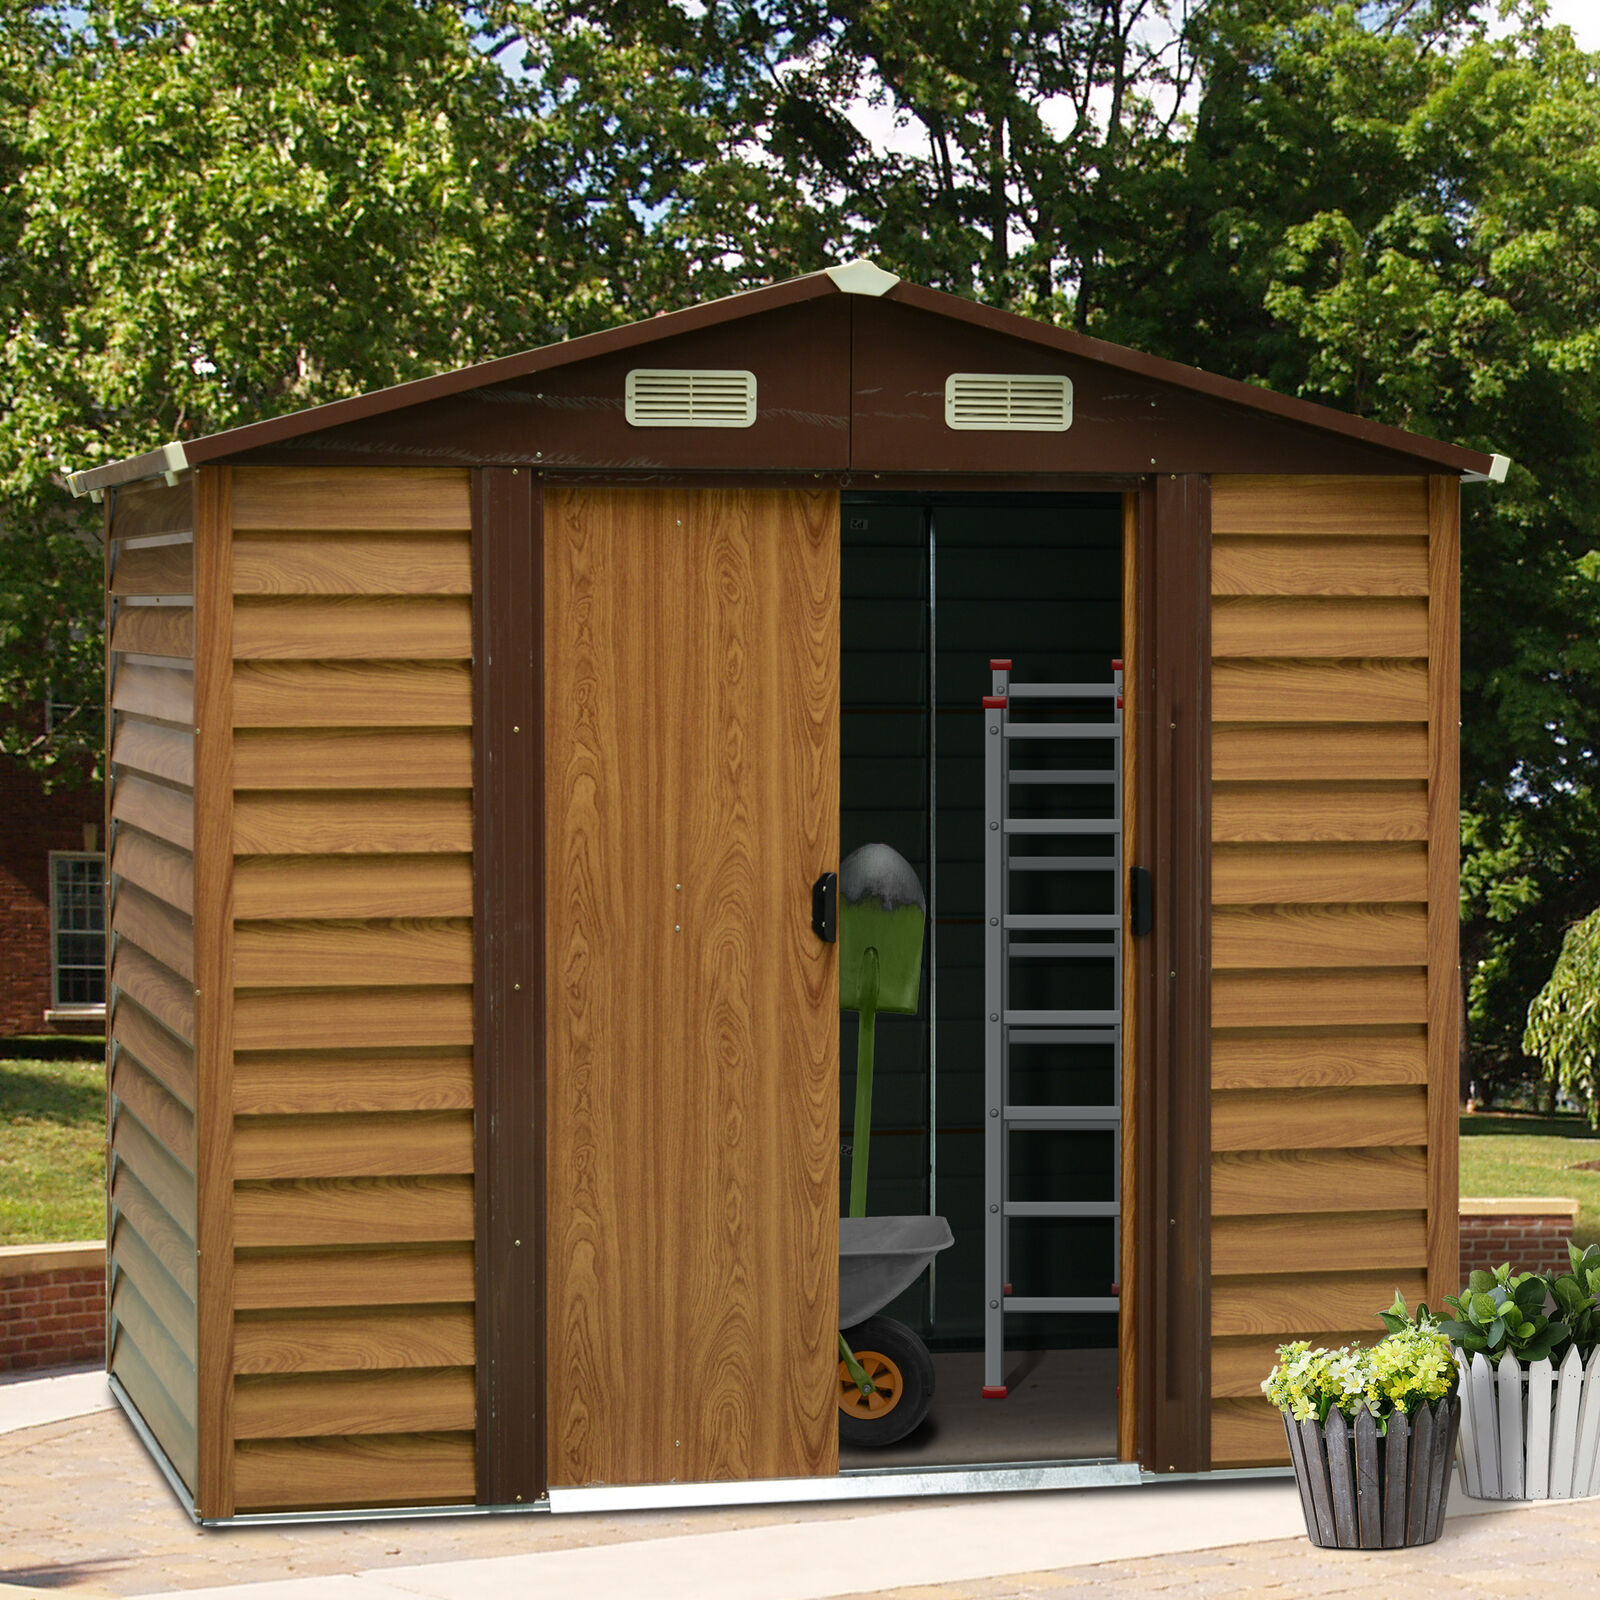 Outsunny 8 x 6FT Metal Garden Shed Wood Effect Woodgrain Storage